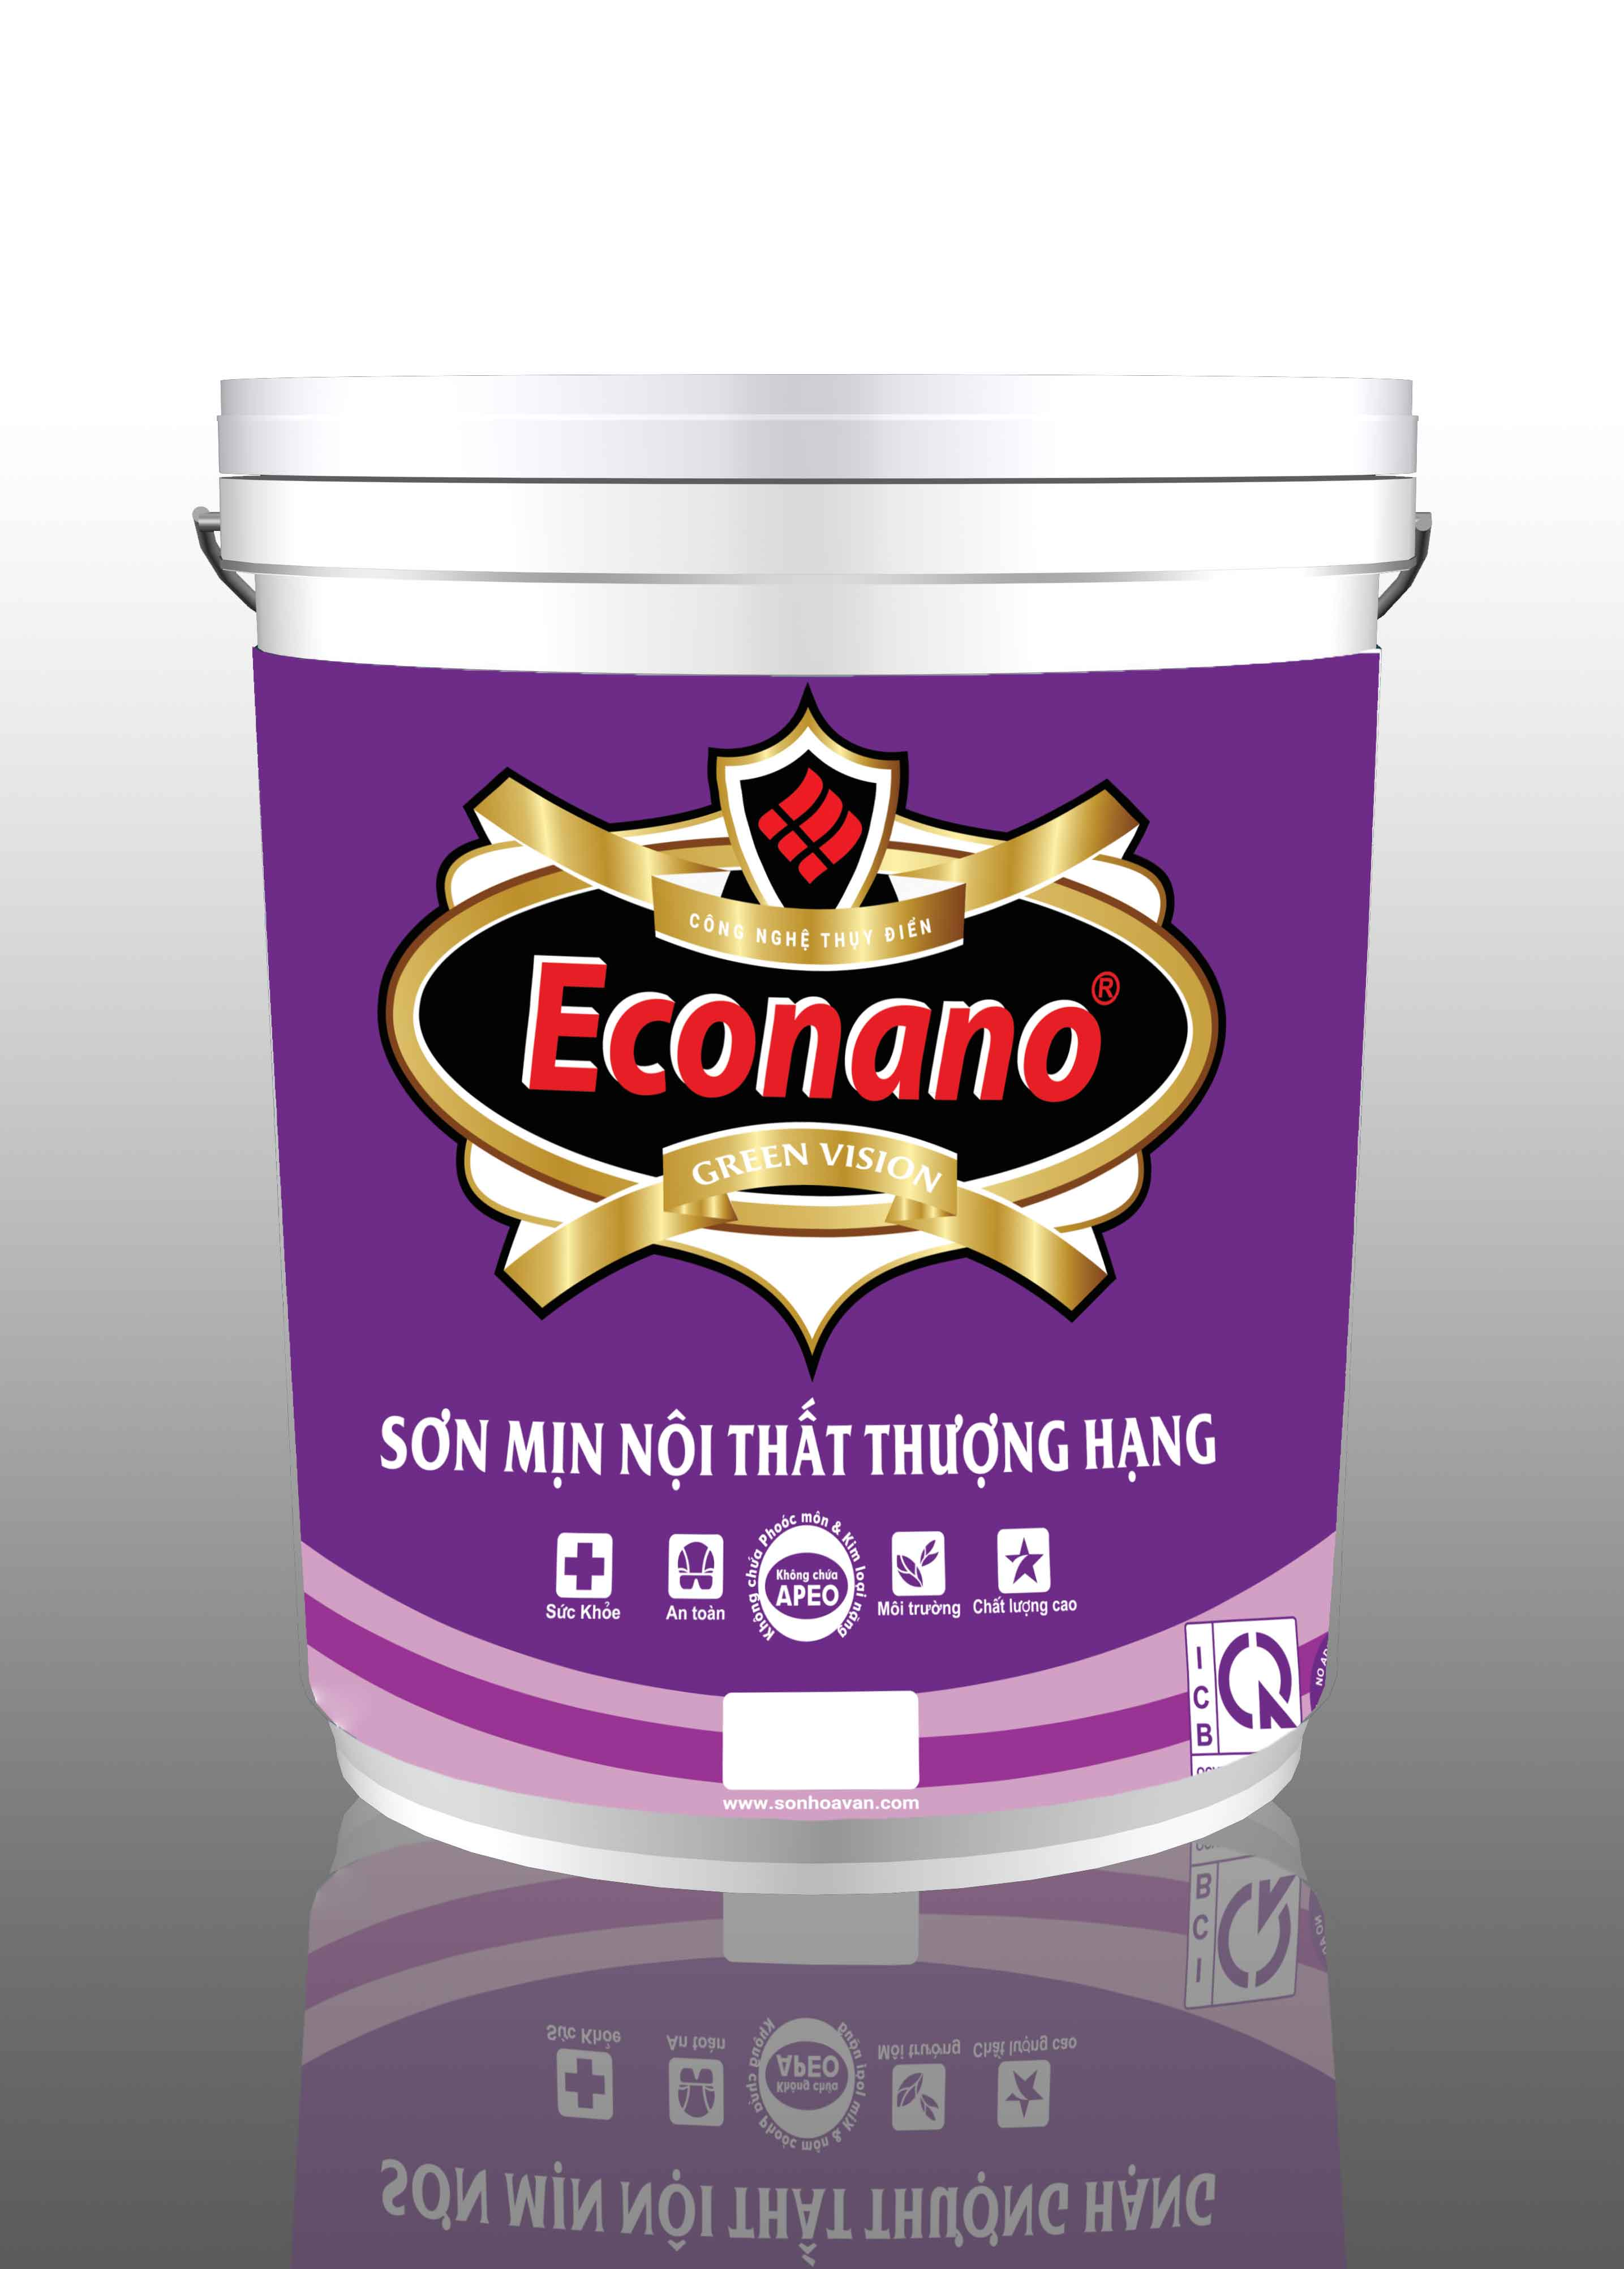 son-min-noi-that-thuong-hang-econano